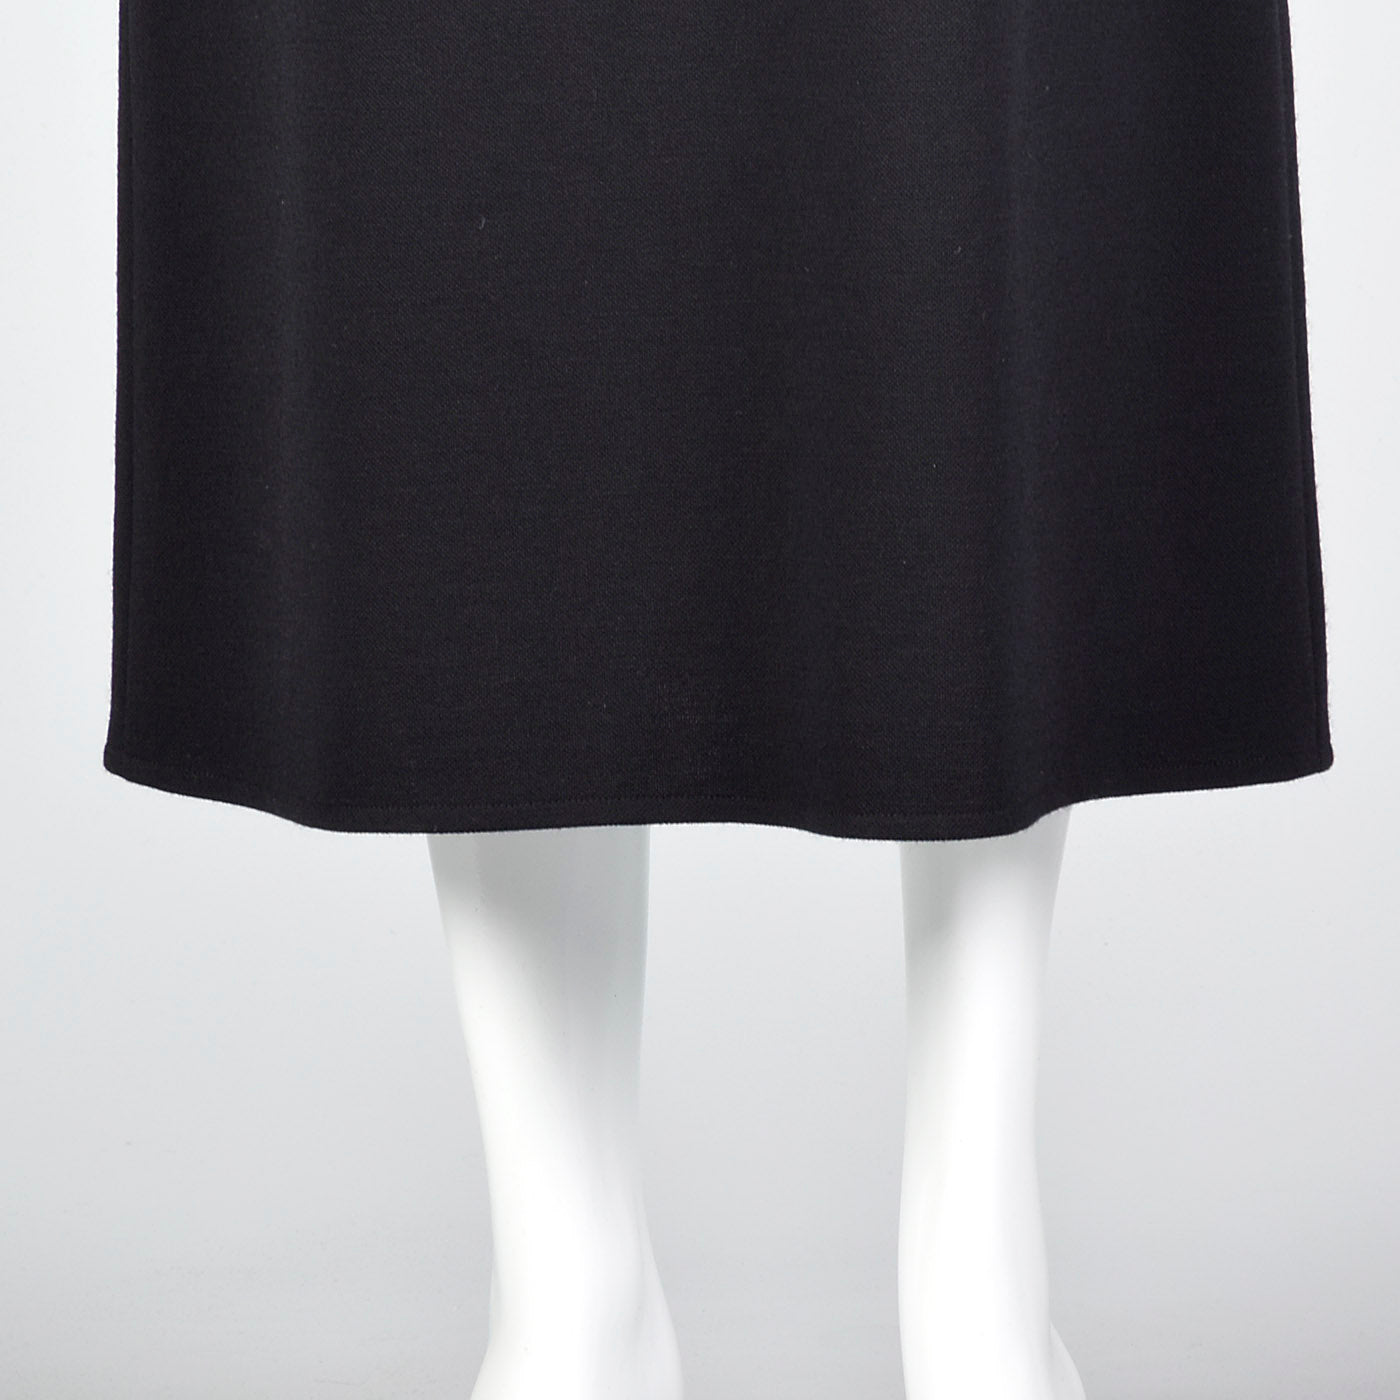 1990s Sonia Rykiel Black Knit Pencil Skirt